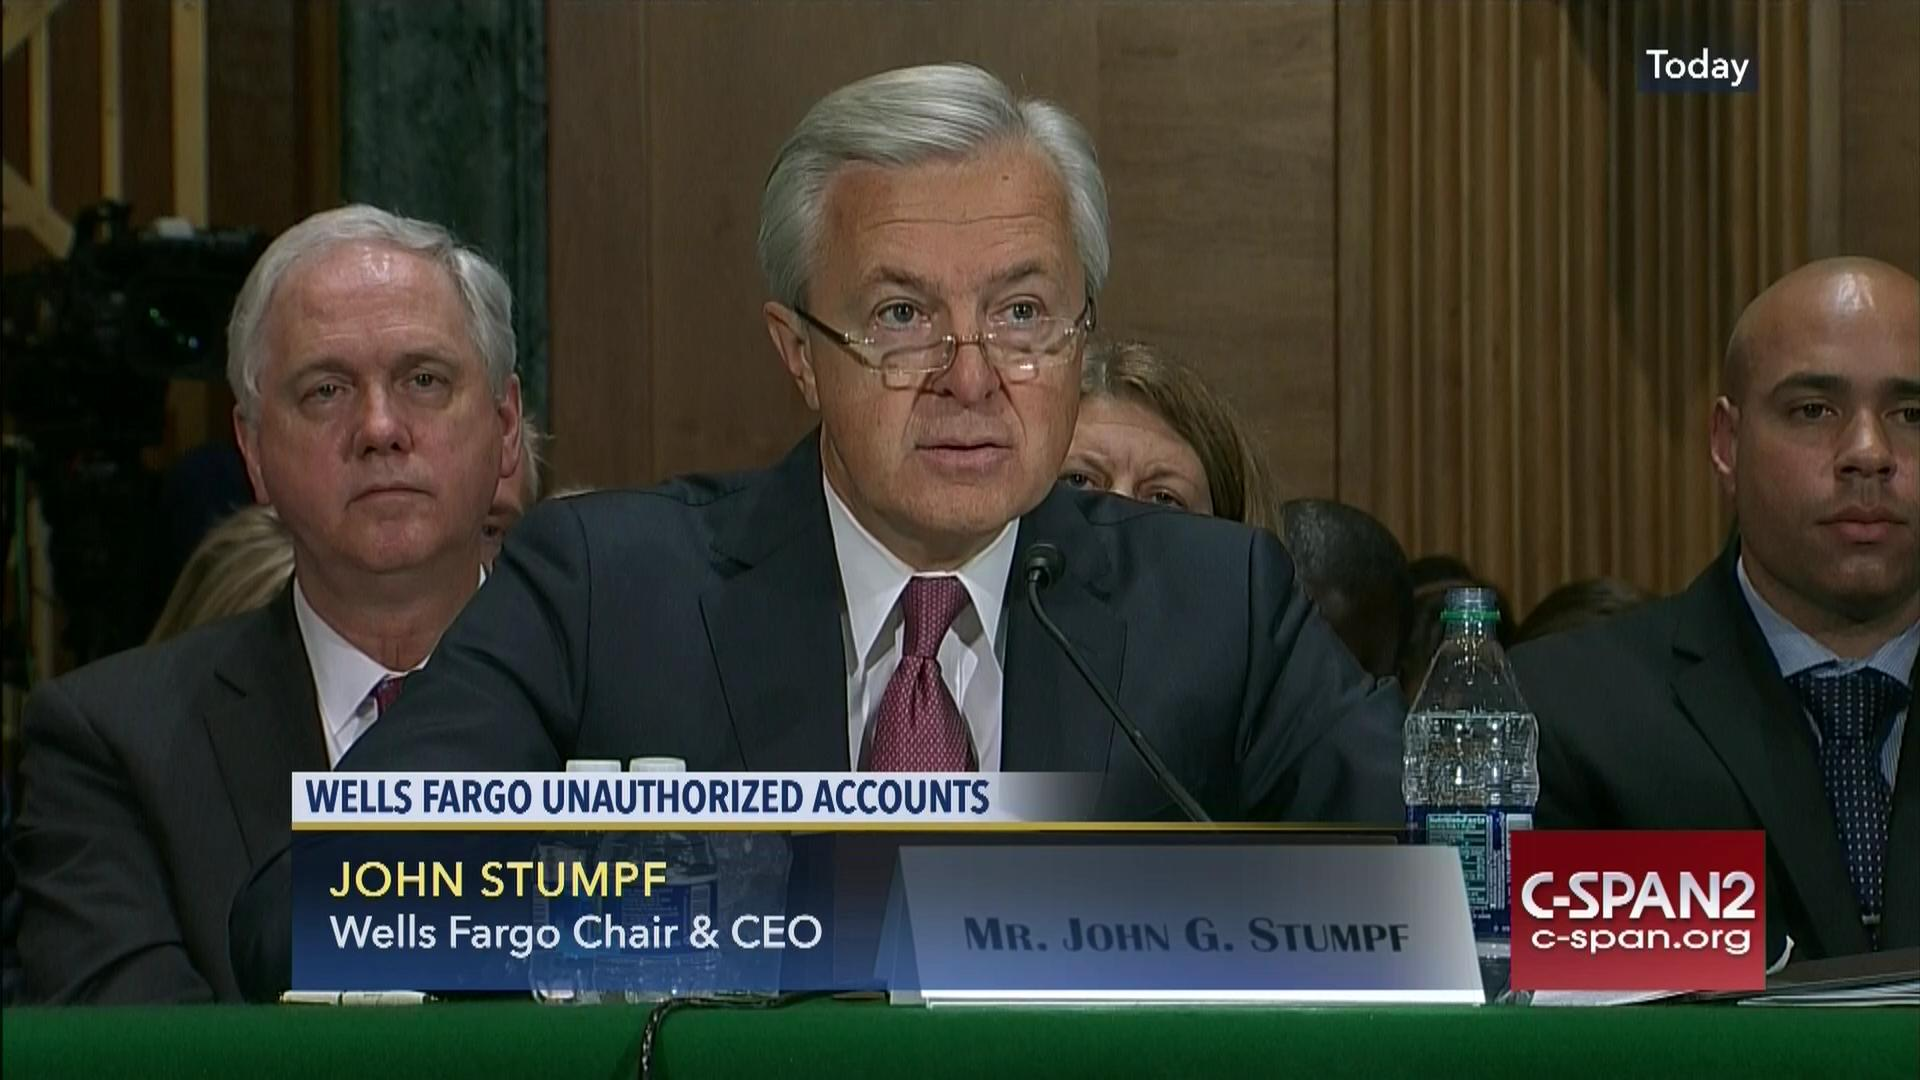 ceo john stumpf testifies unauthorized wells fargo accounts | c